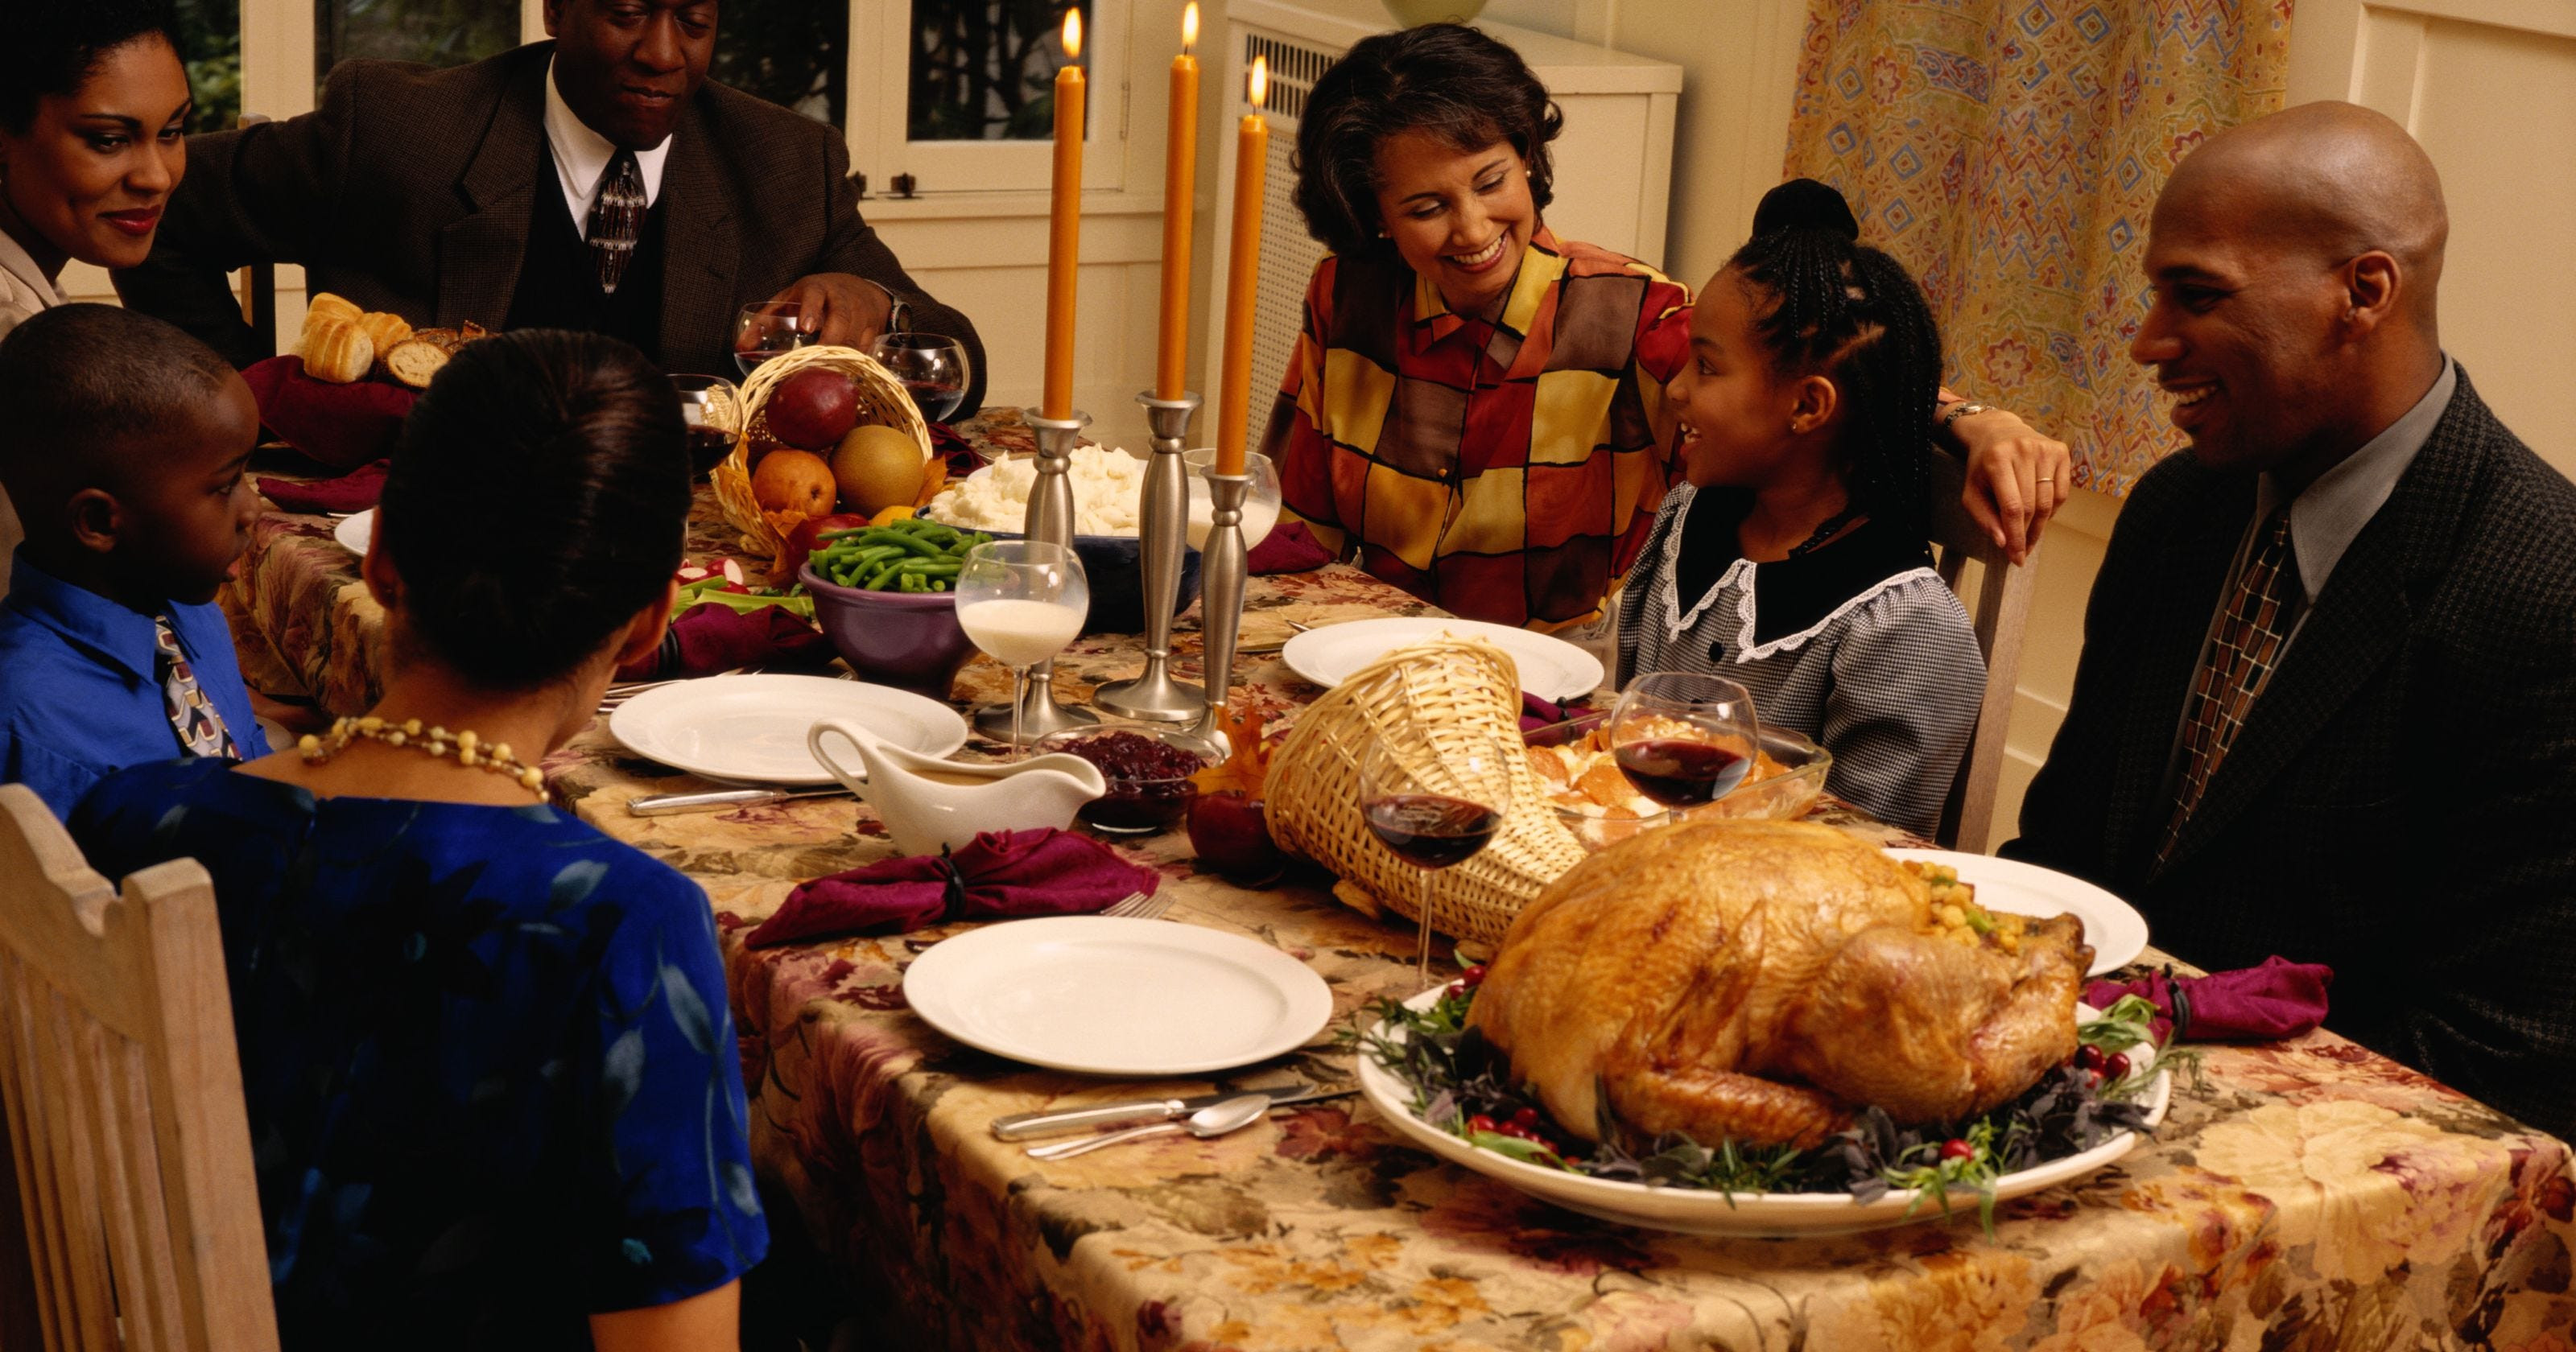 Free Thanksgiving Dinner  Adult son ditching family Thanksgiving dinner this year